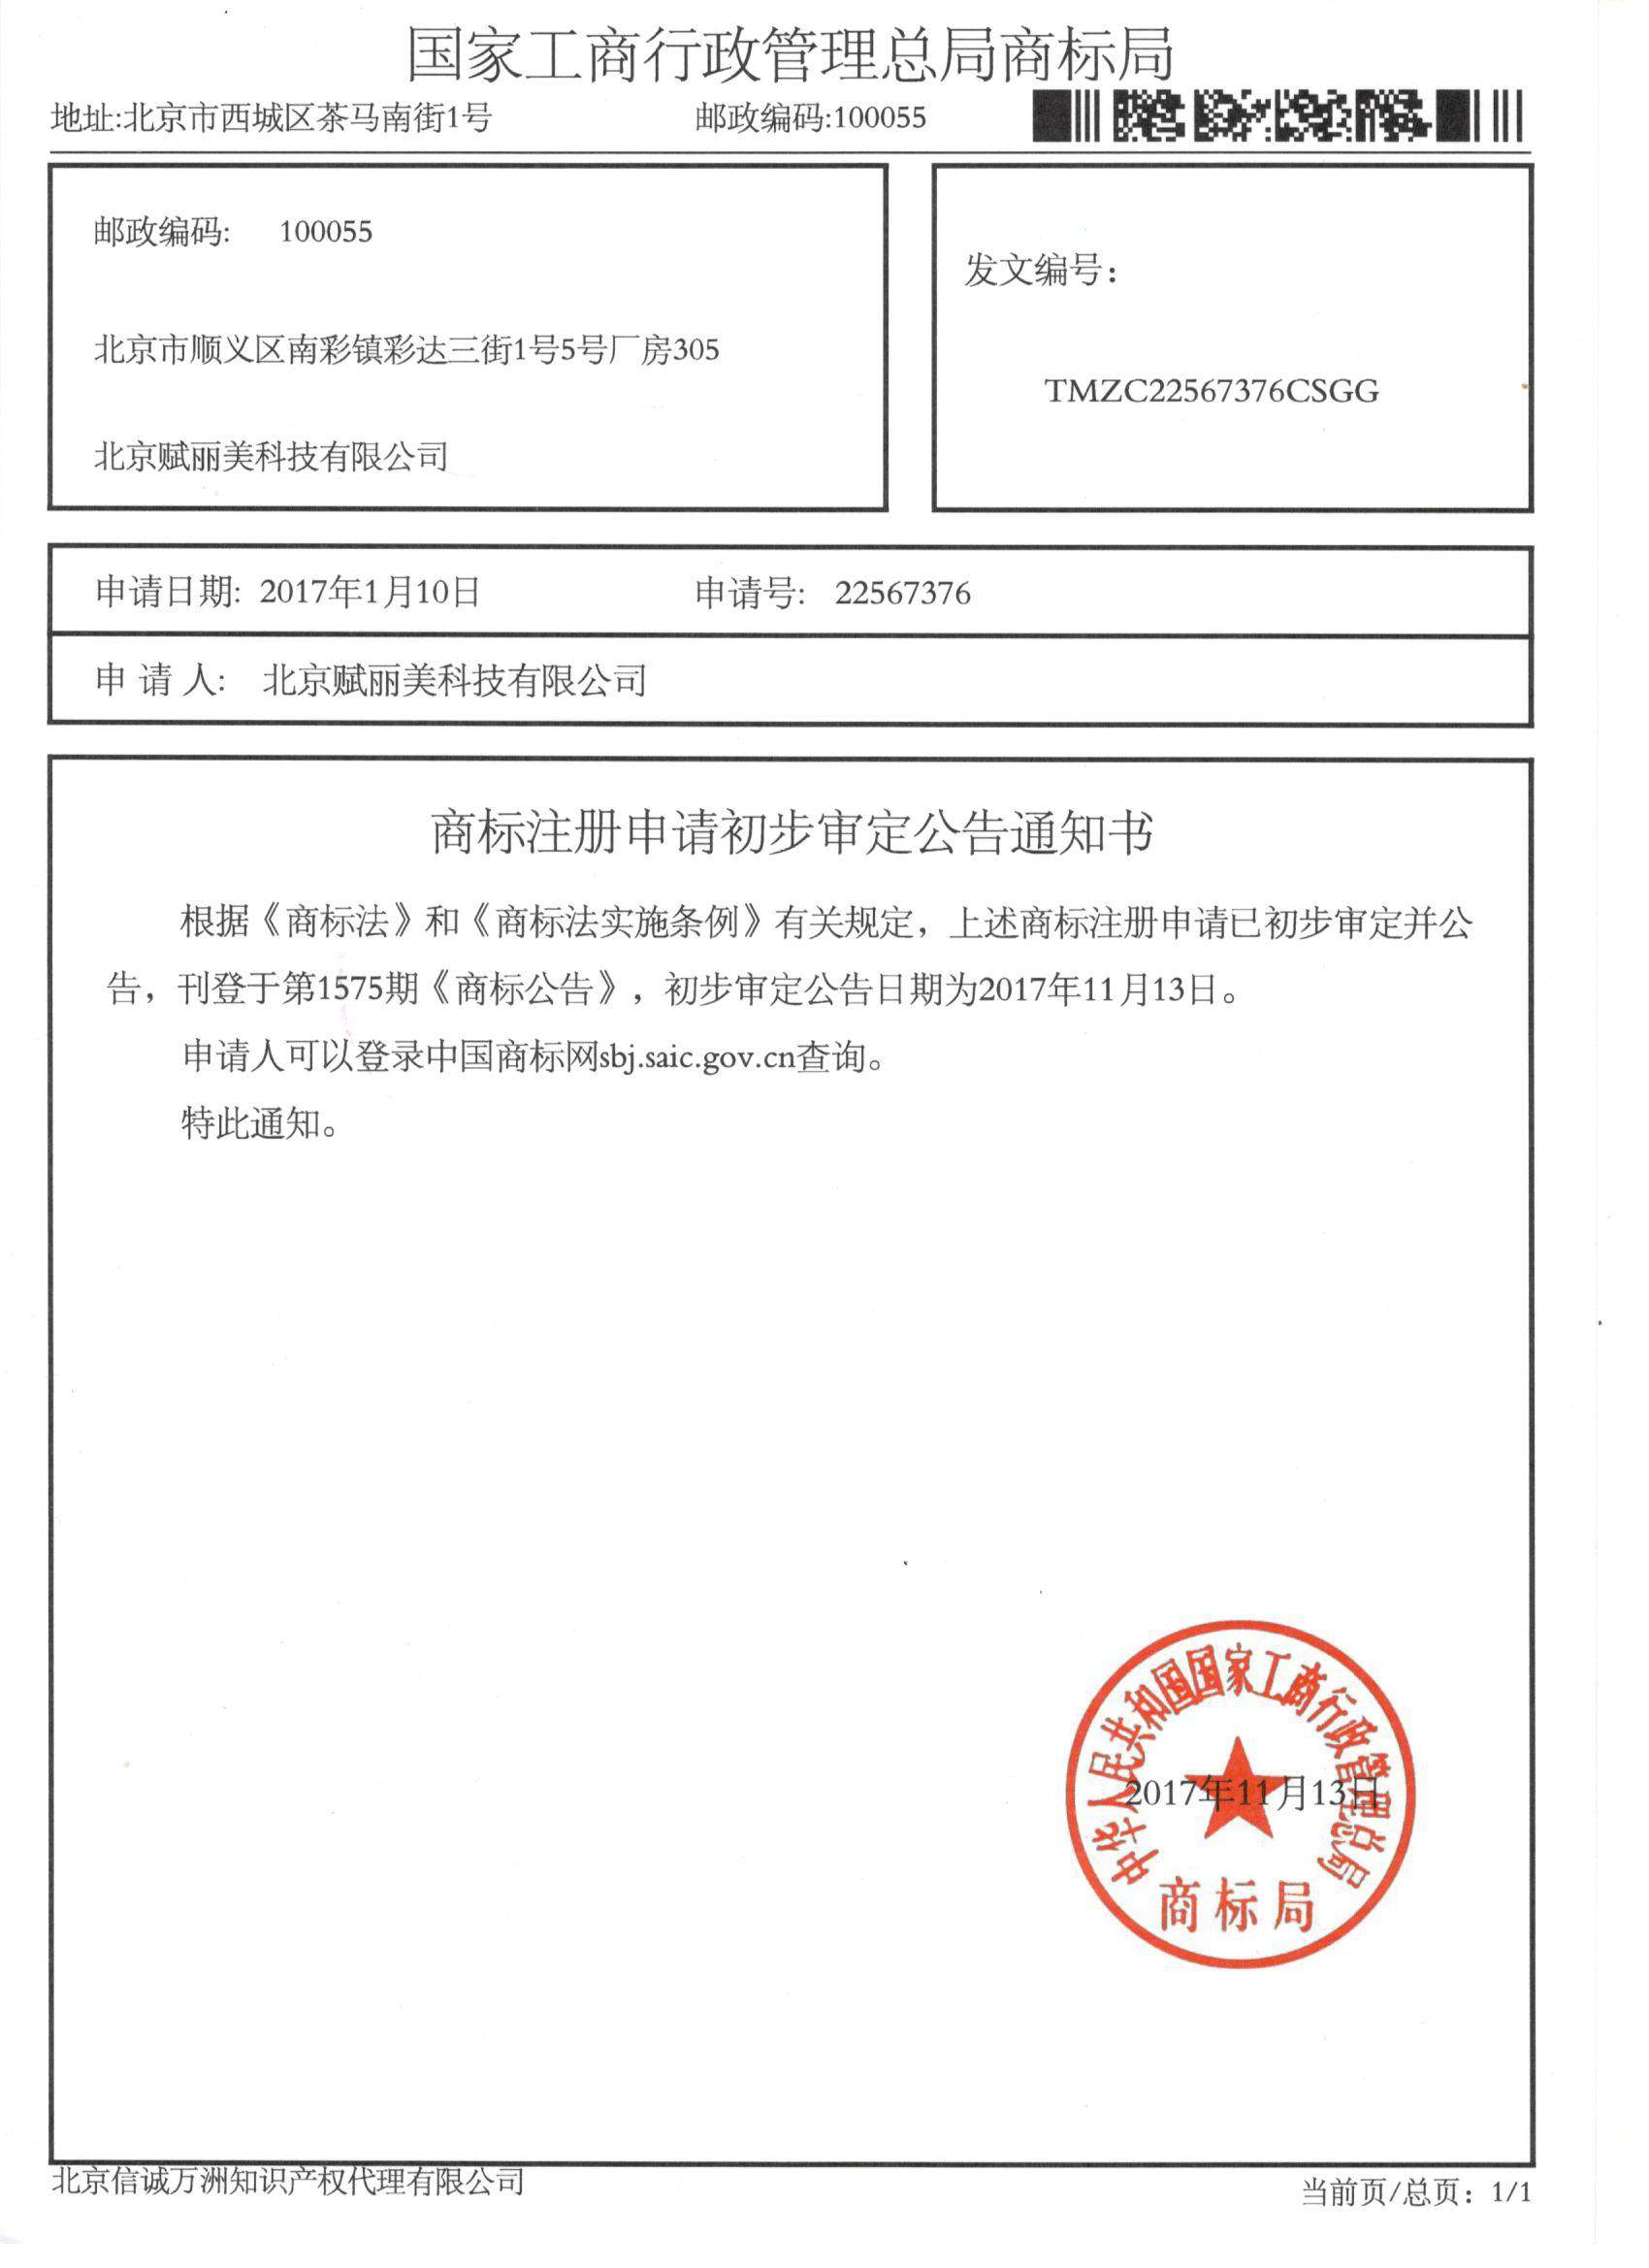 The forimi trademark passed the evaluation book